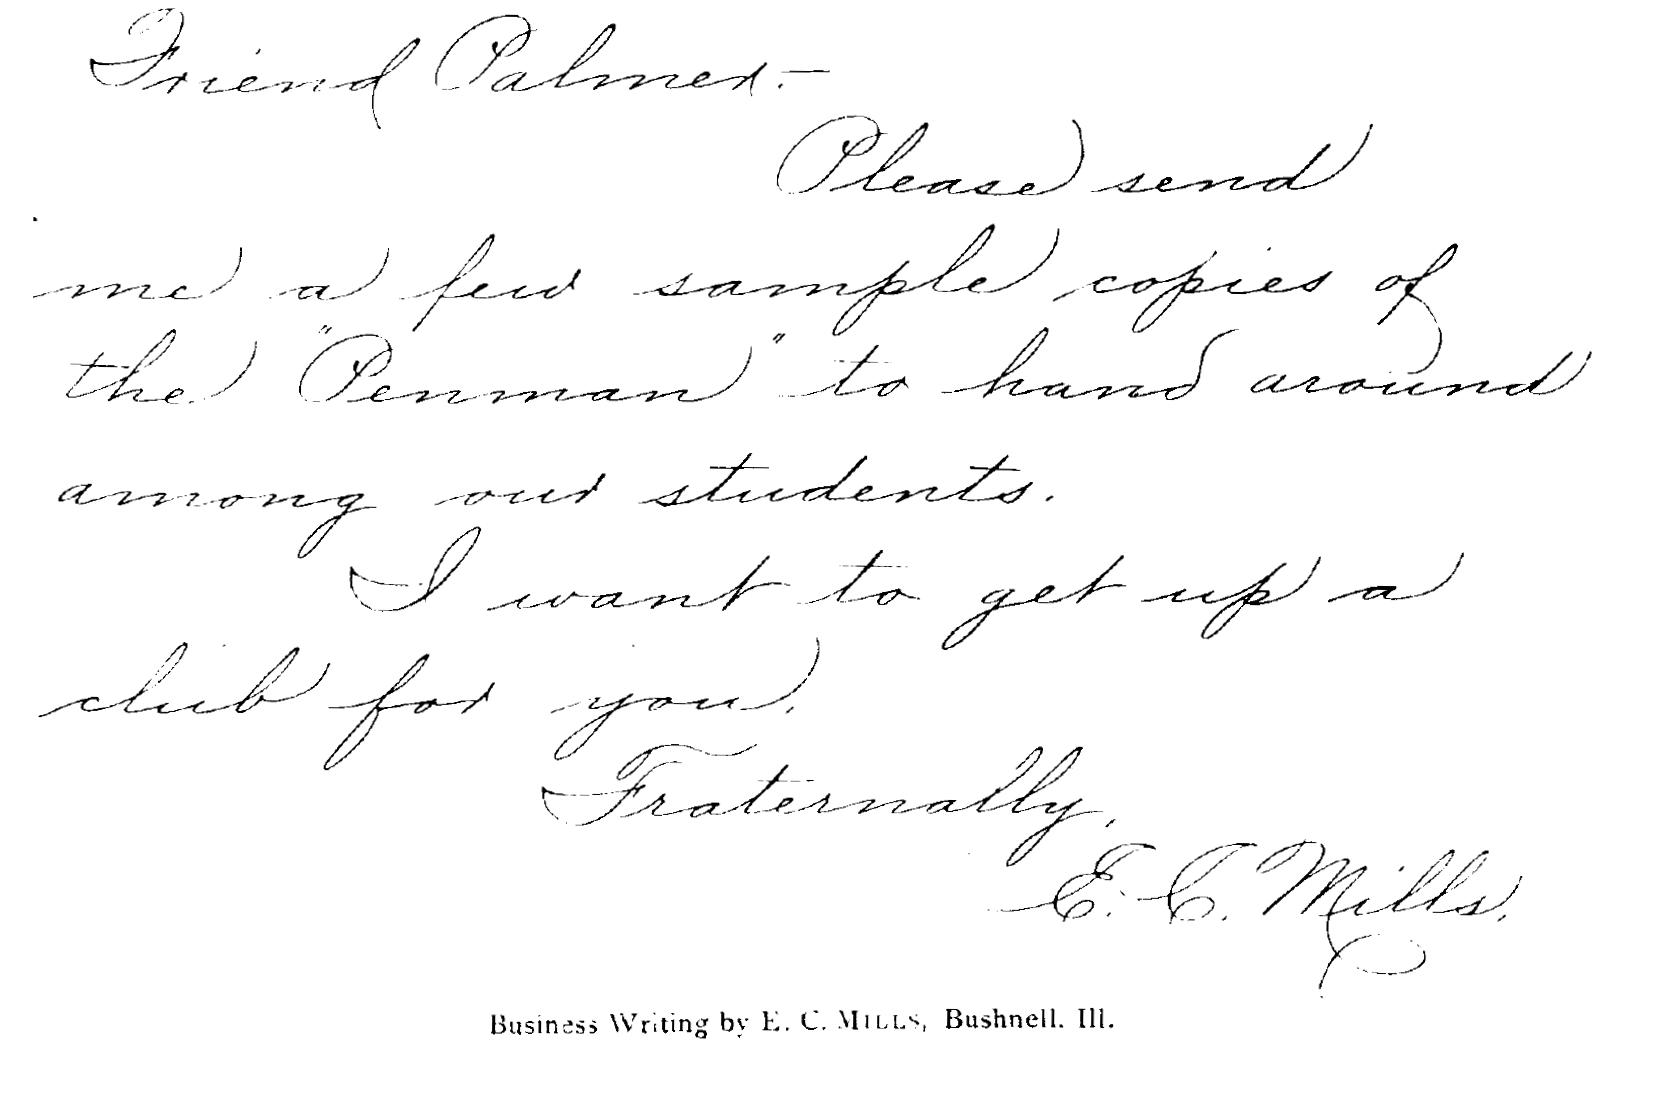 Mills Letter to Palmer 1894.png